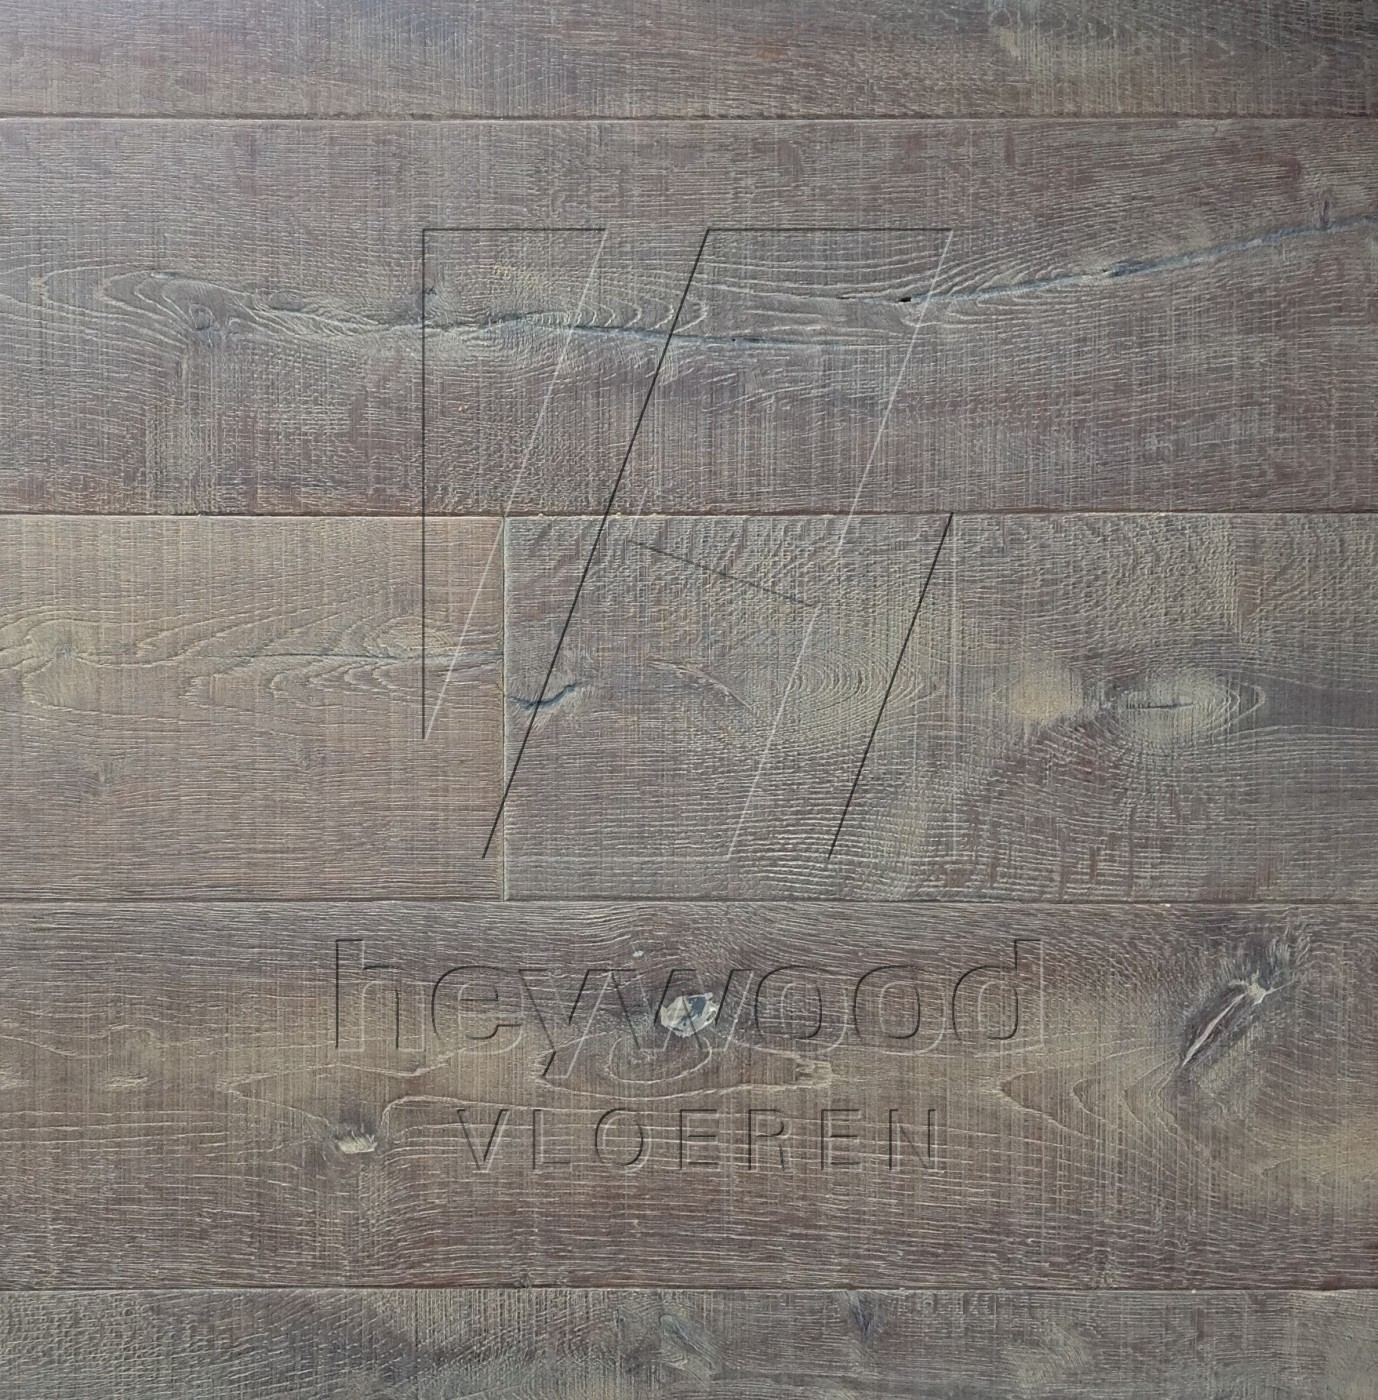 Normandy in Aged Knotting Hill Surface of Aged Hardwood Floors